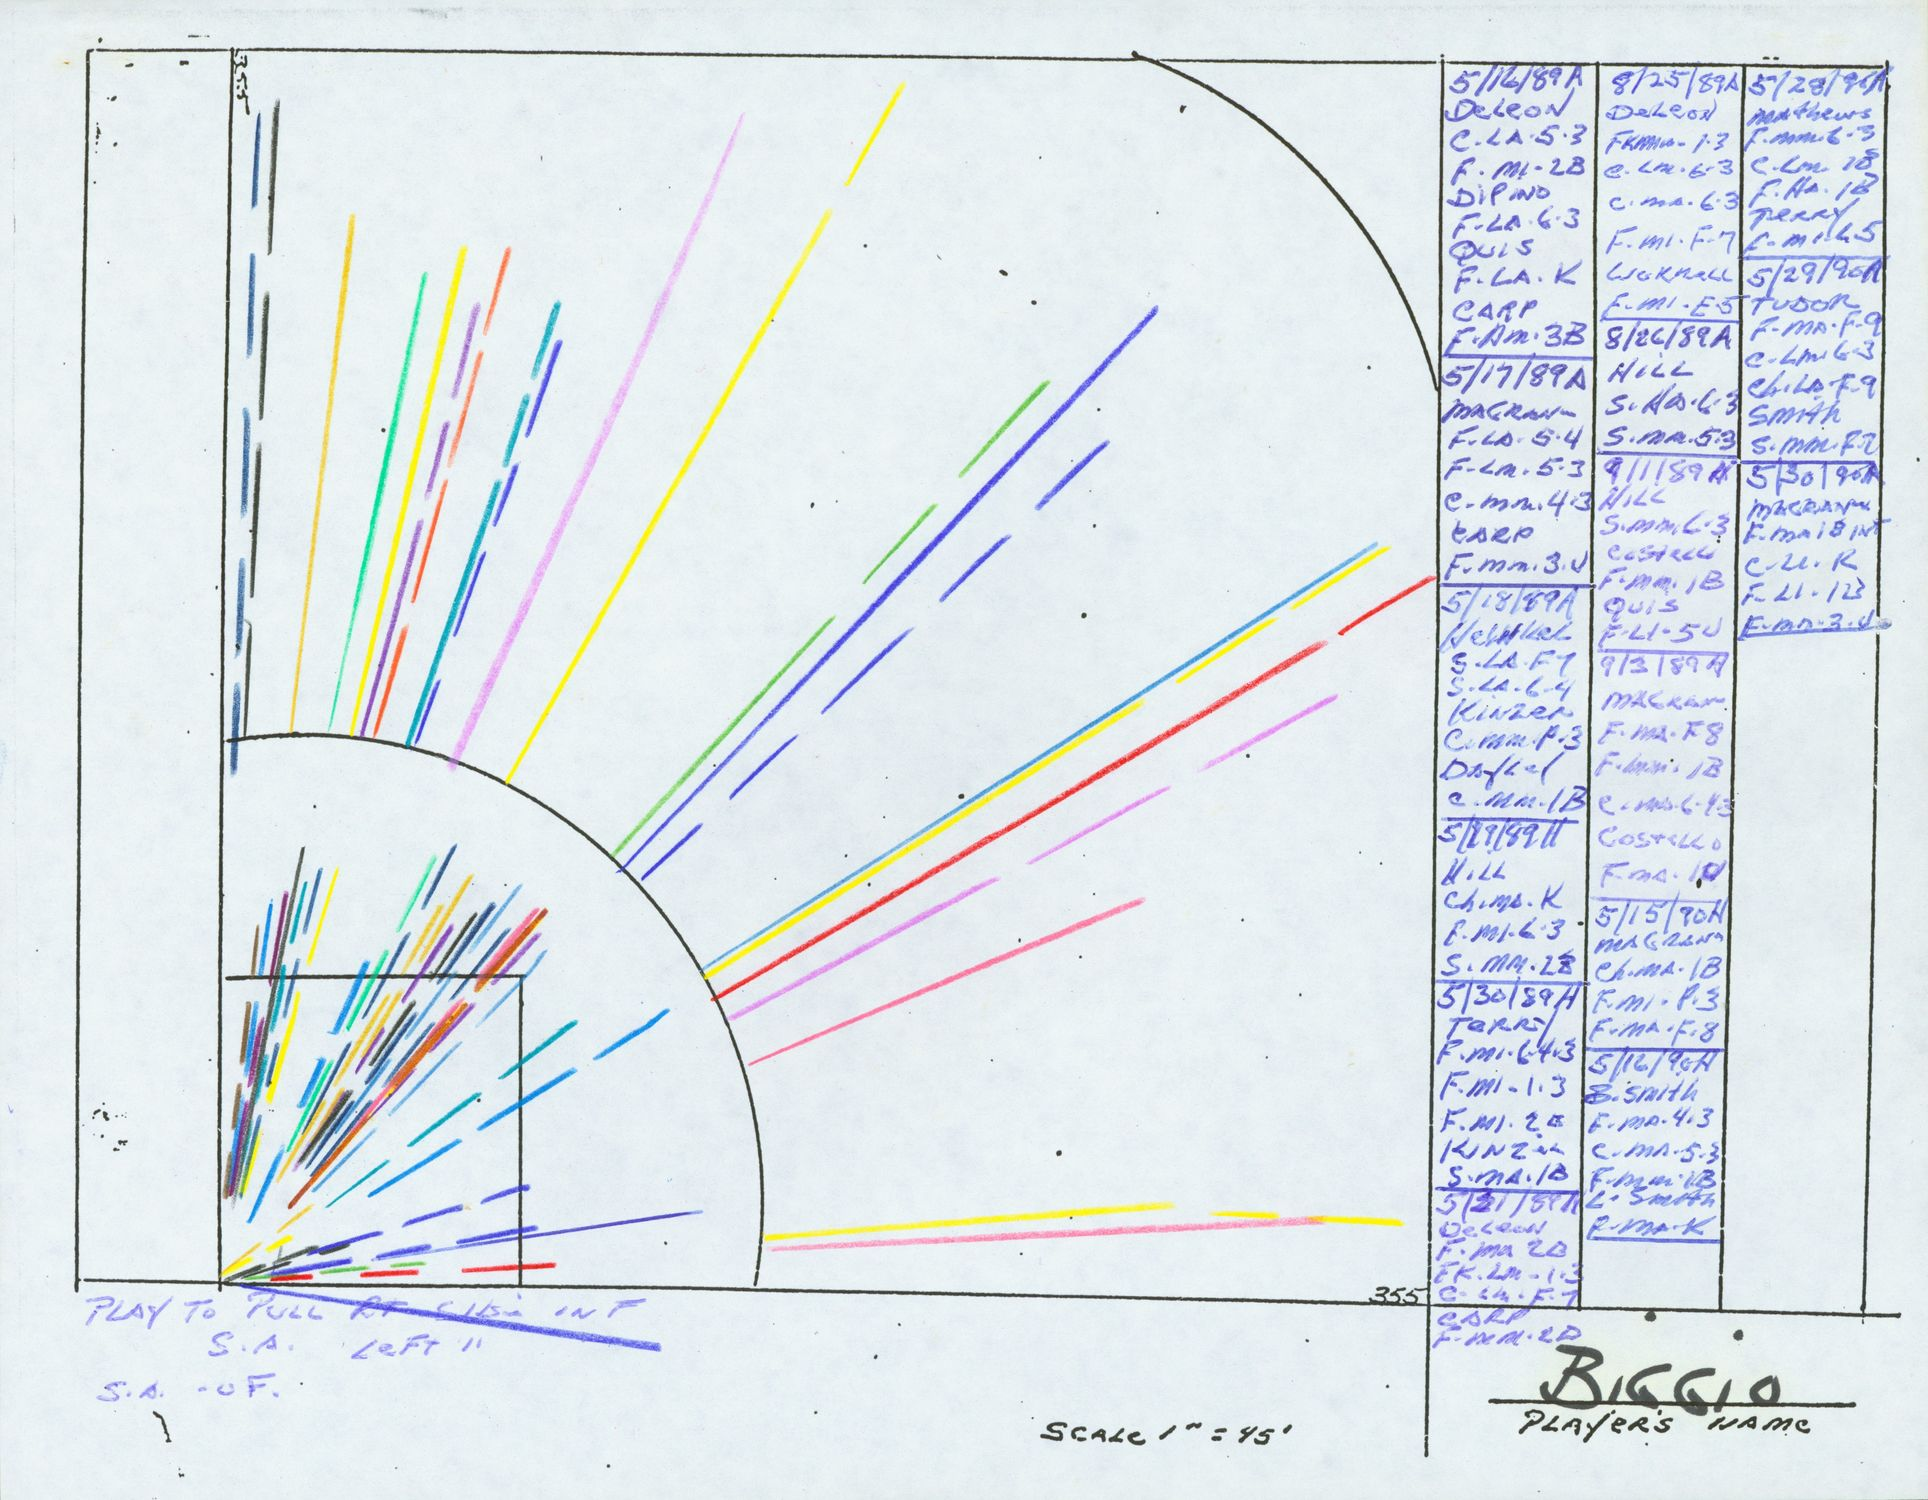 Artifacts tell story of 2015 hof candidates baseball hall of fame color coded hitting chart on craig biggio that whitey herzog used to plan defenses bl 261 2010 national baseball hall of fame library nvjuhfo Choice Image